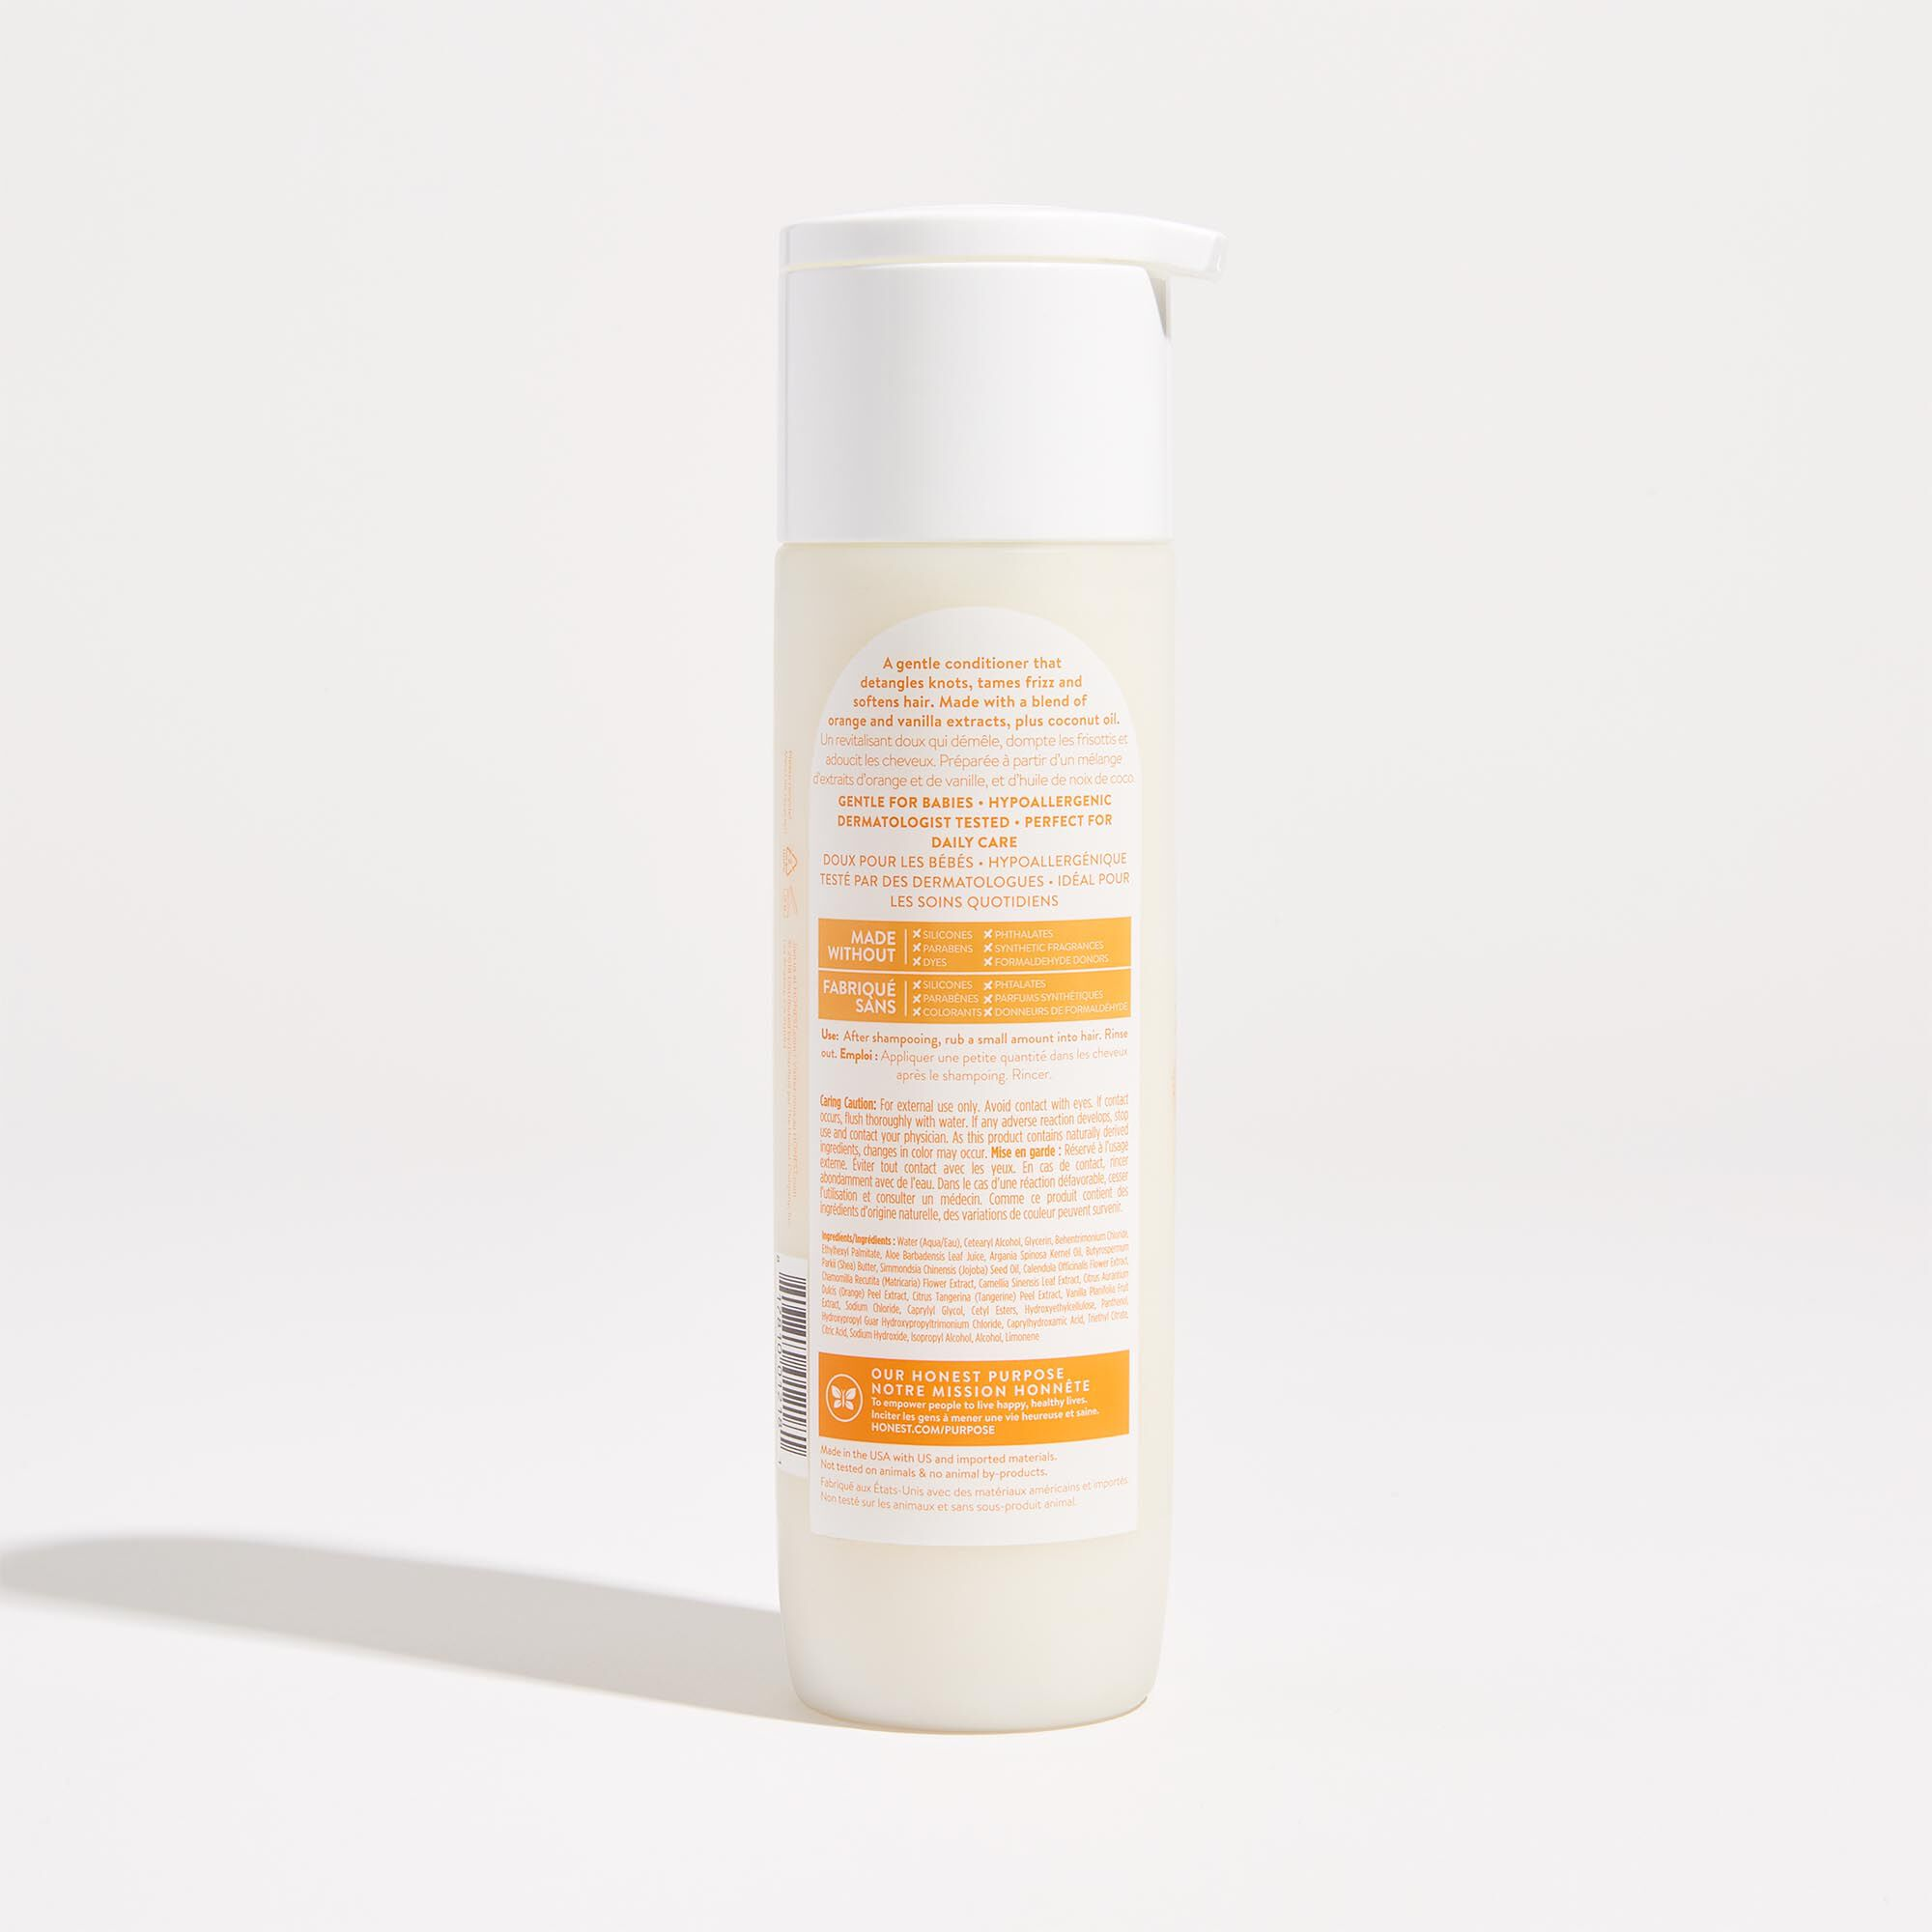 Everyday Gentle Conditioner Back of Bottle